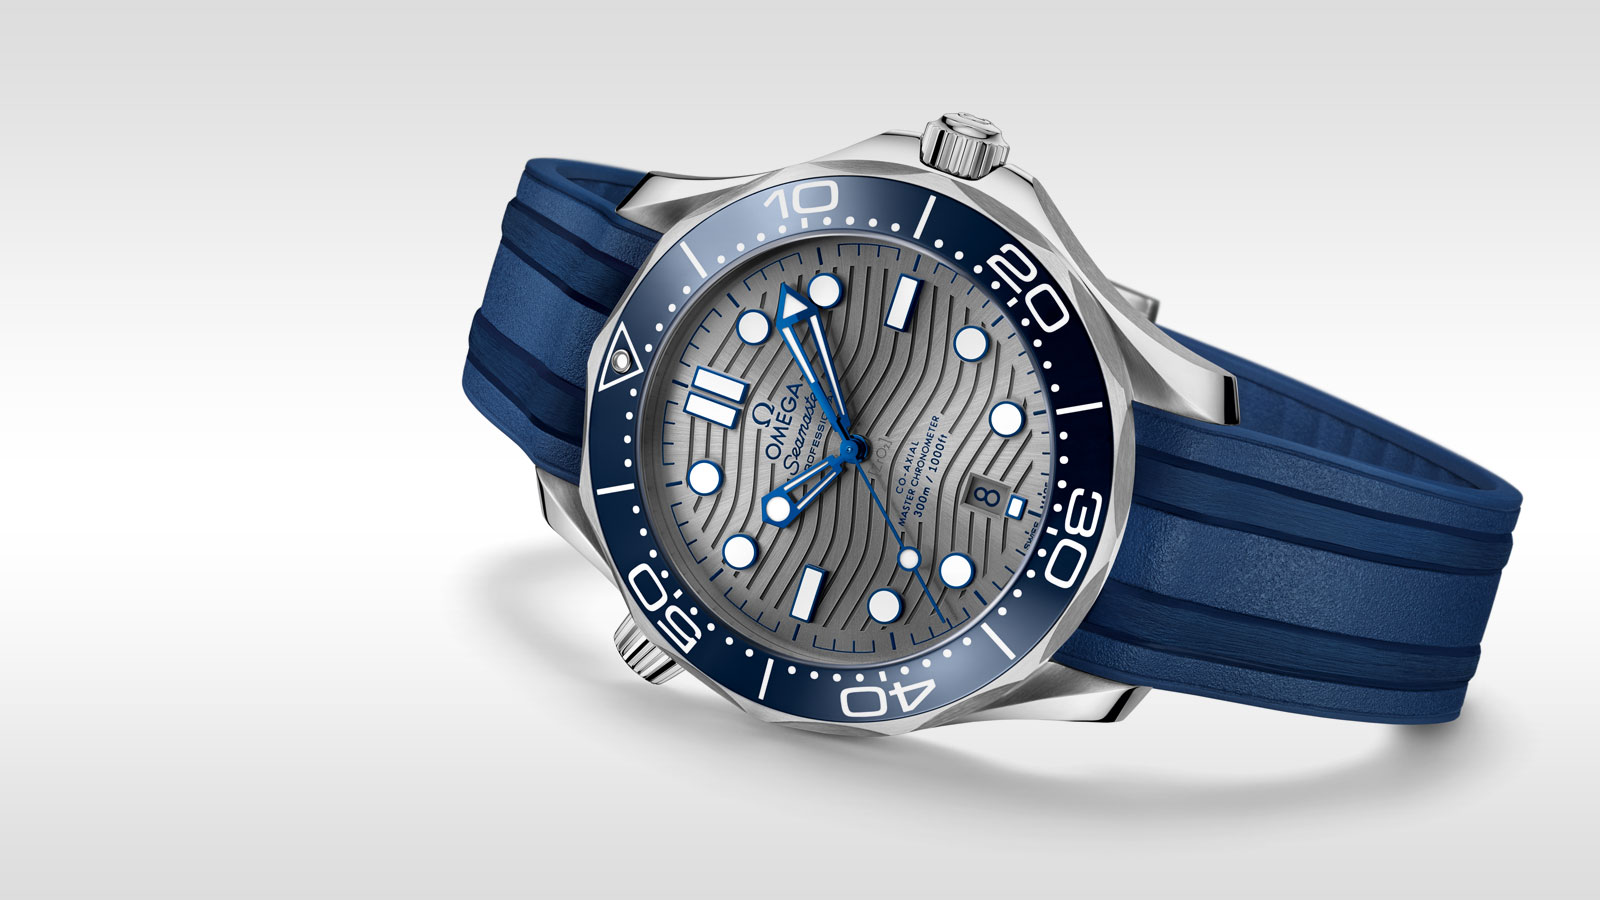 Seamaster Diver 300 M Diver 300M Omega Co‑Axial Master Chronometer 42 mm - 210.32.42.20.06.001 - View 3